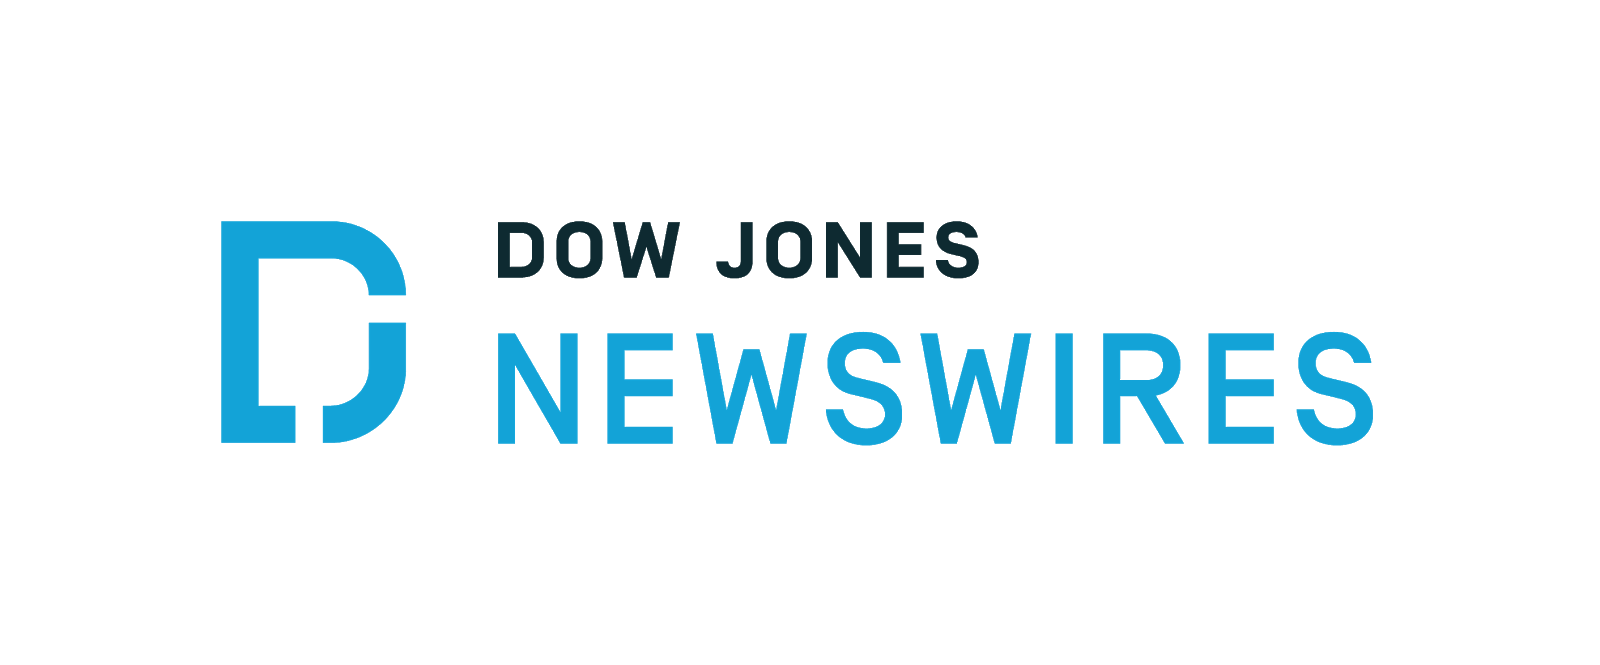 Dow Jones Newswires